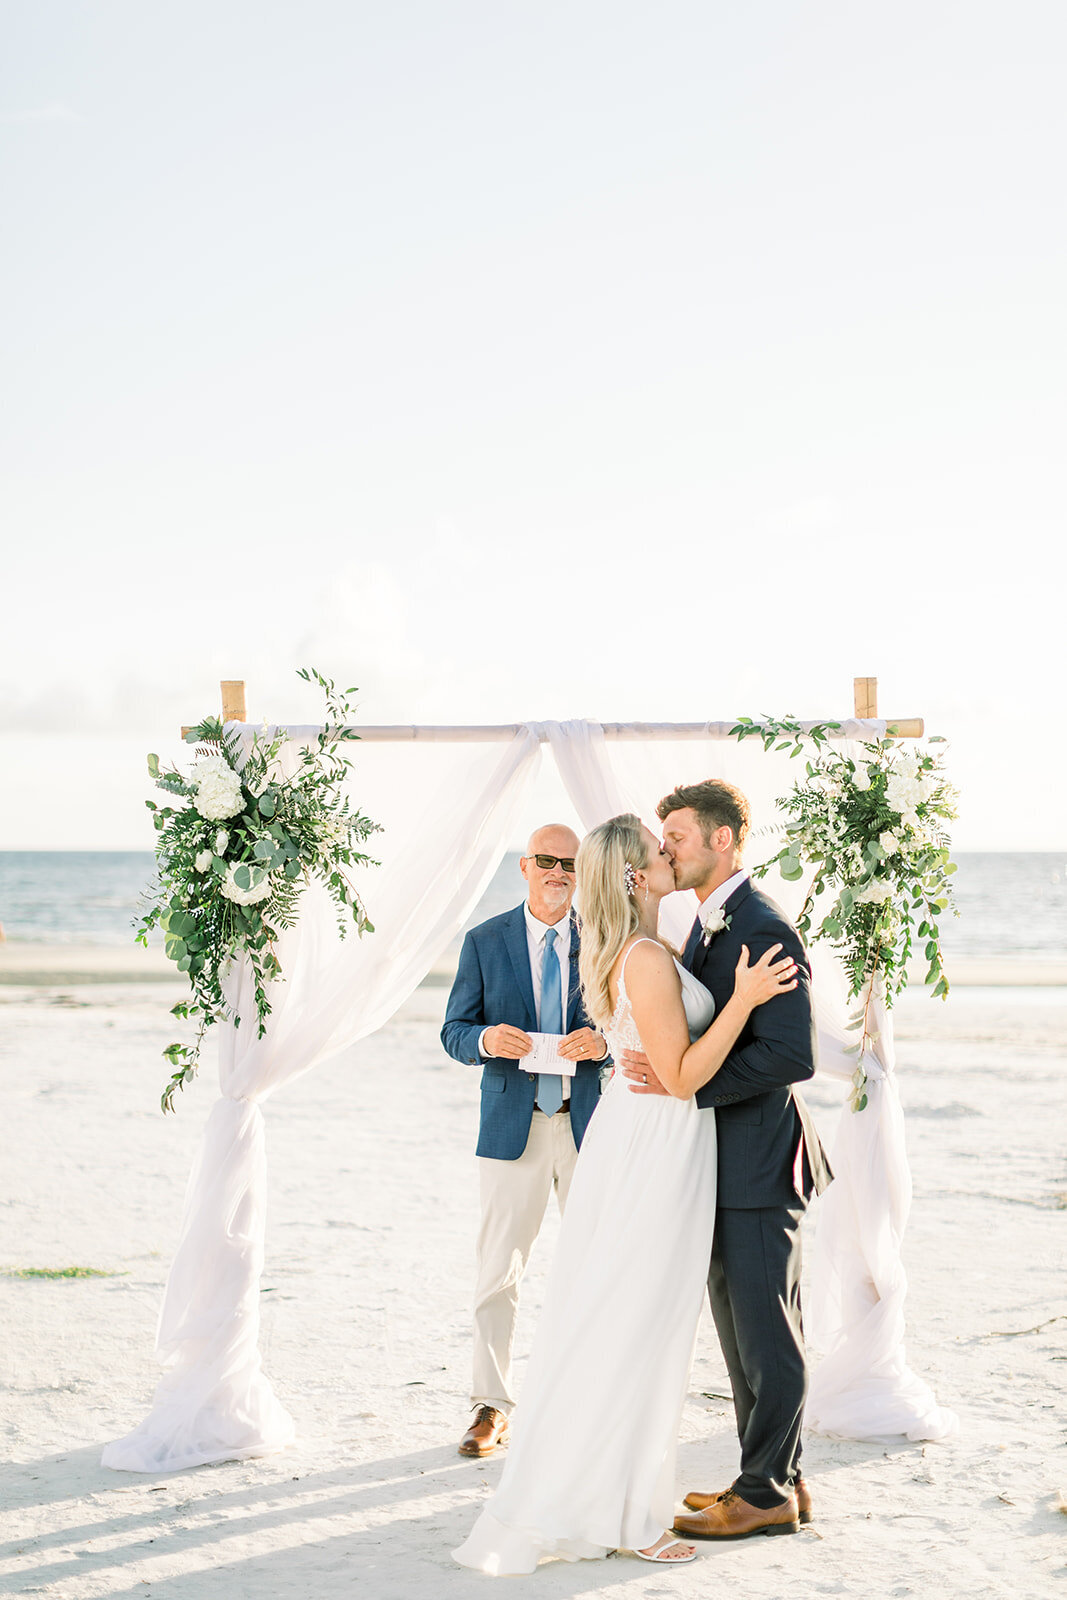 alex-mike-bowditch-beach-fort-myers-wedding-photos-1245